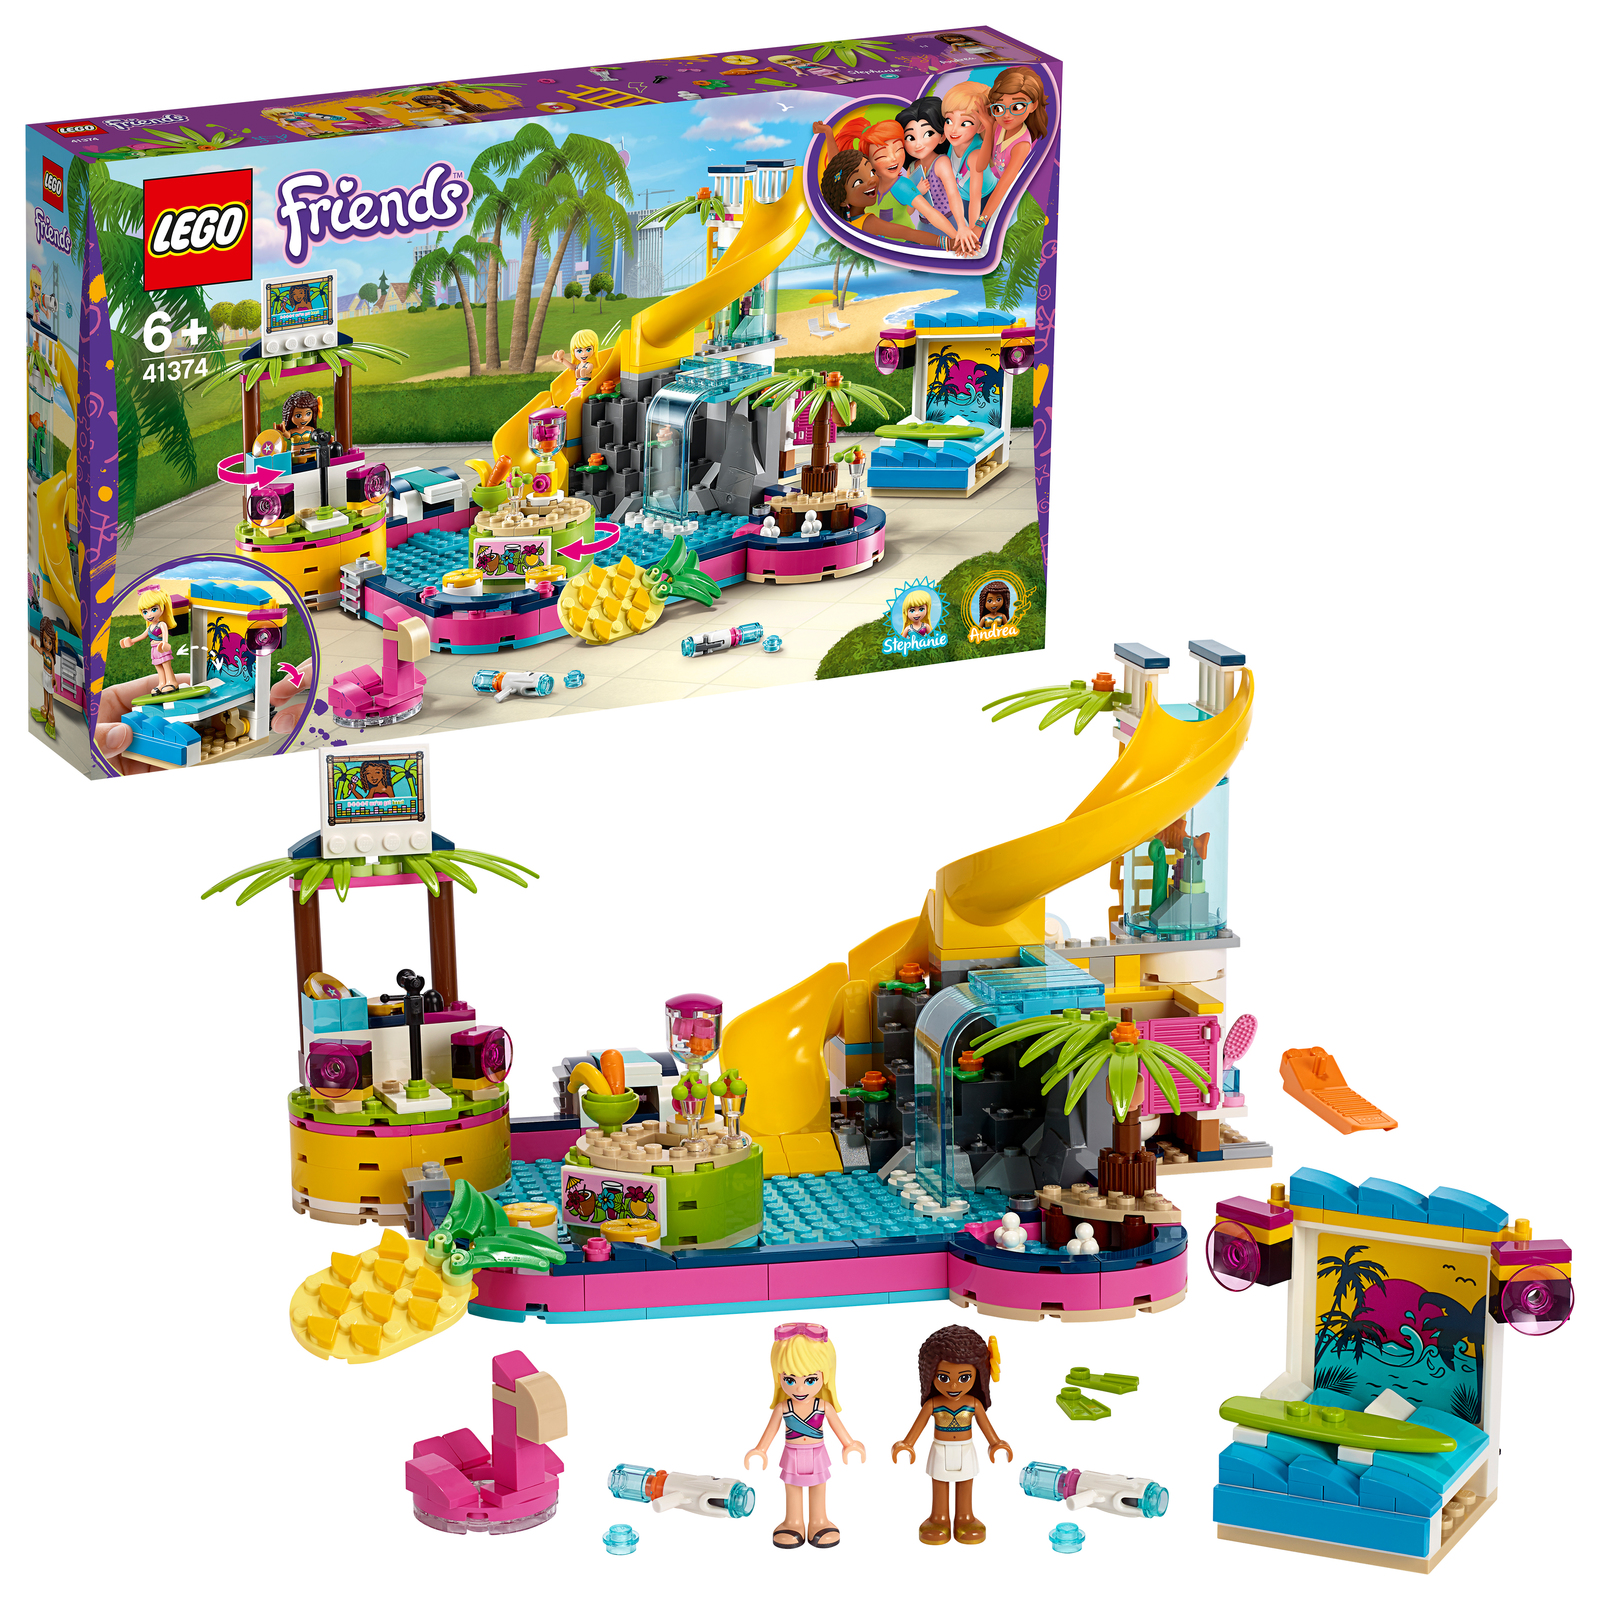 LEGO Friends: Andrea's Pool Party - (41374)